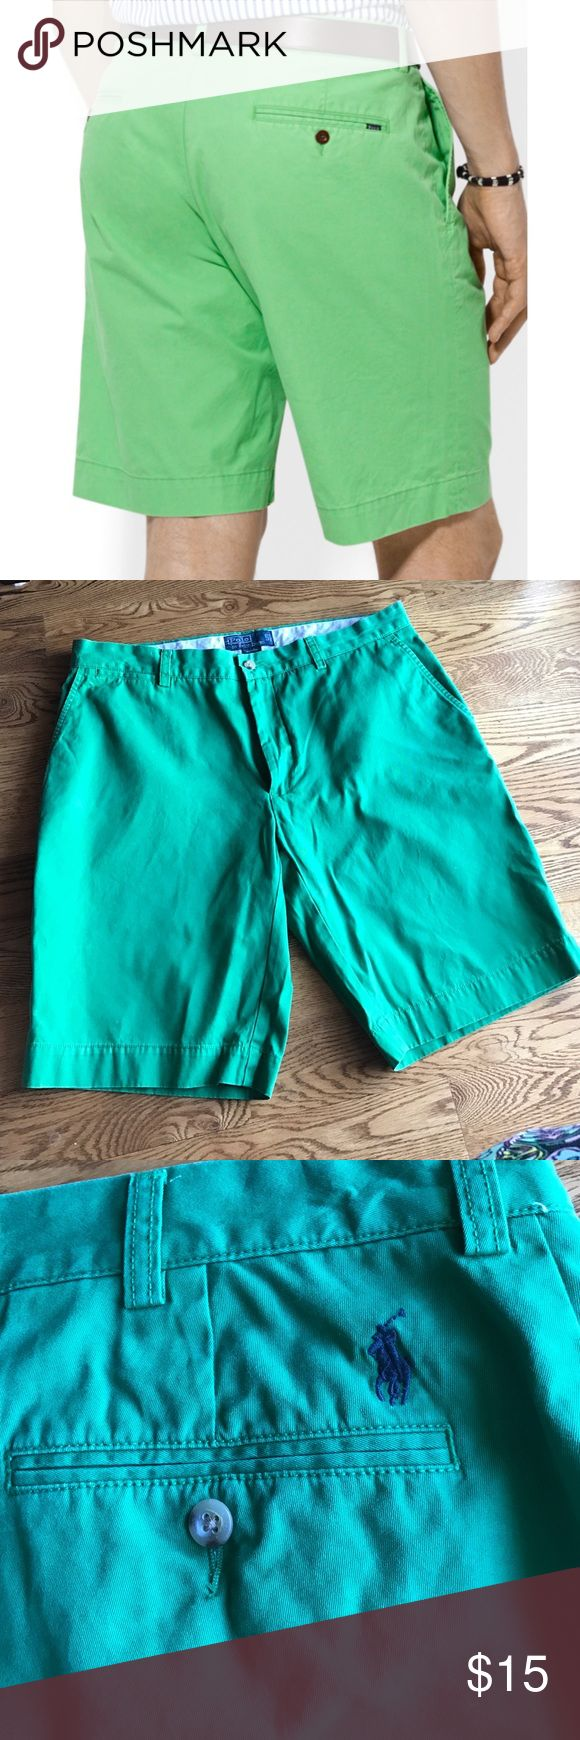 Polo men's dress shorts Excellent condition, Polo by Ralph Lauren beautiful vibrant green men's dress shorts. Worn just a couple of times, size 36. Discounts available if purchased in a bundle. Polo by Ralph Lauren Shorts Flat Front